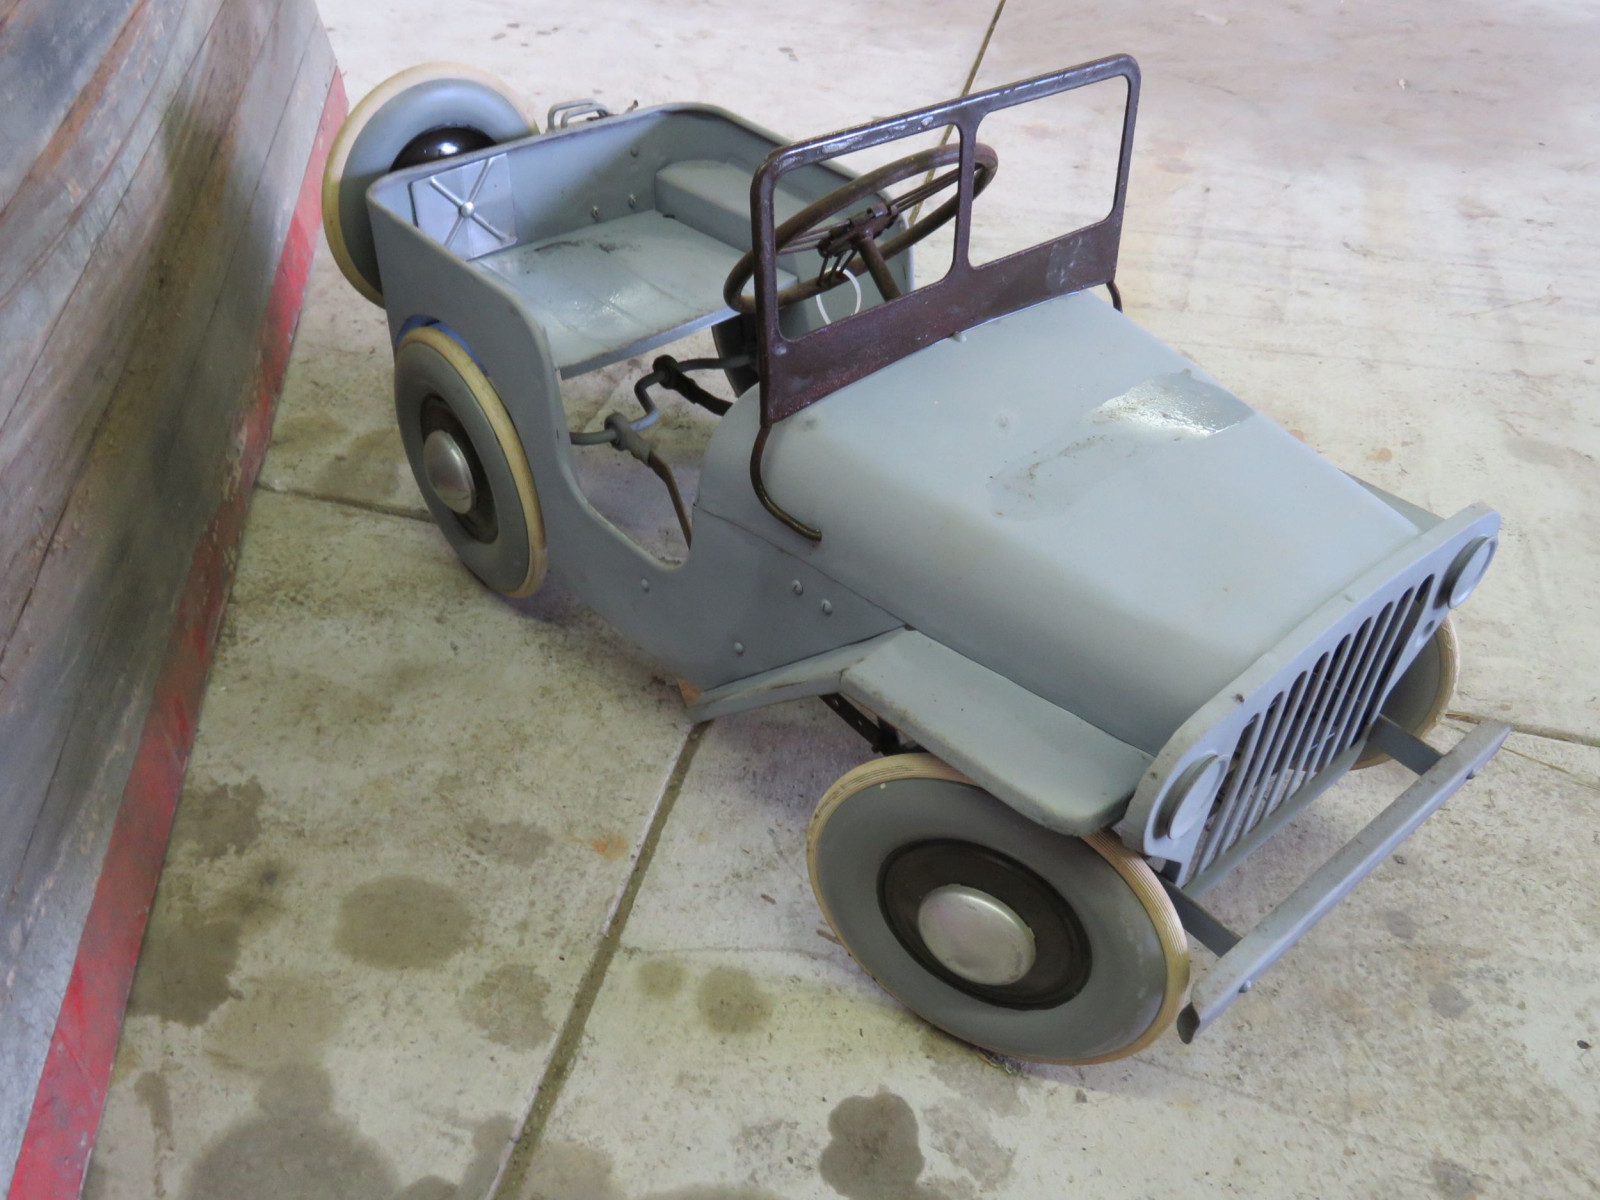 Vintage Garton Military Willys Jeep Pedal Car - Image 3